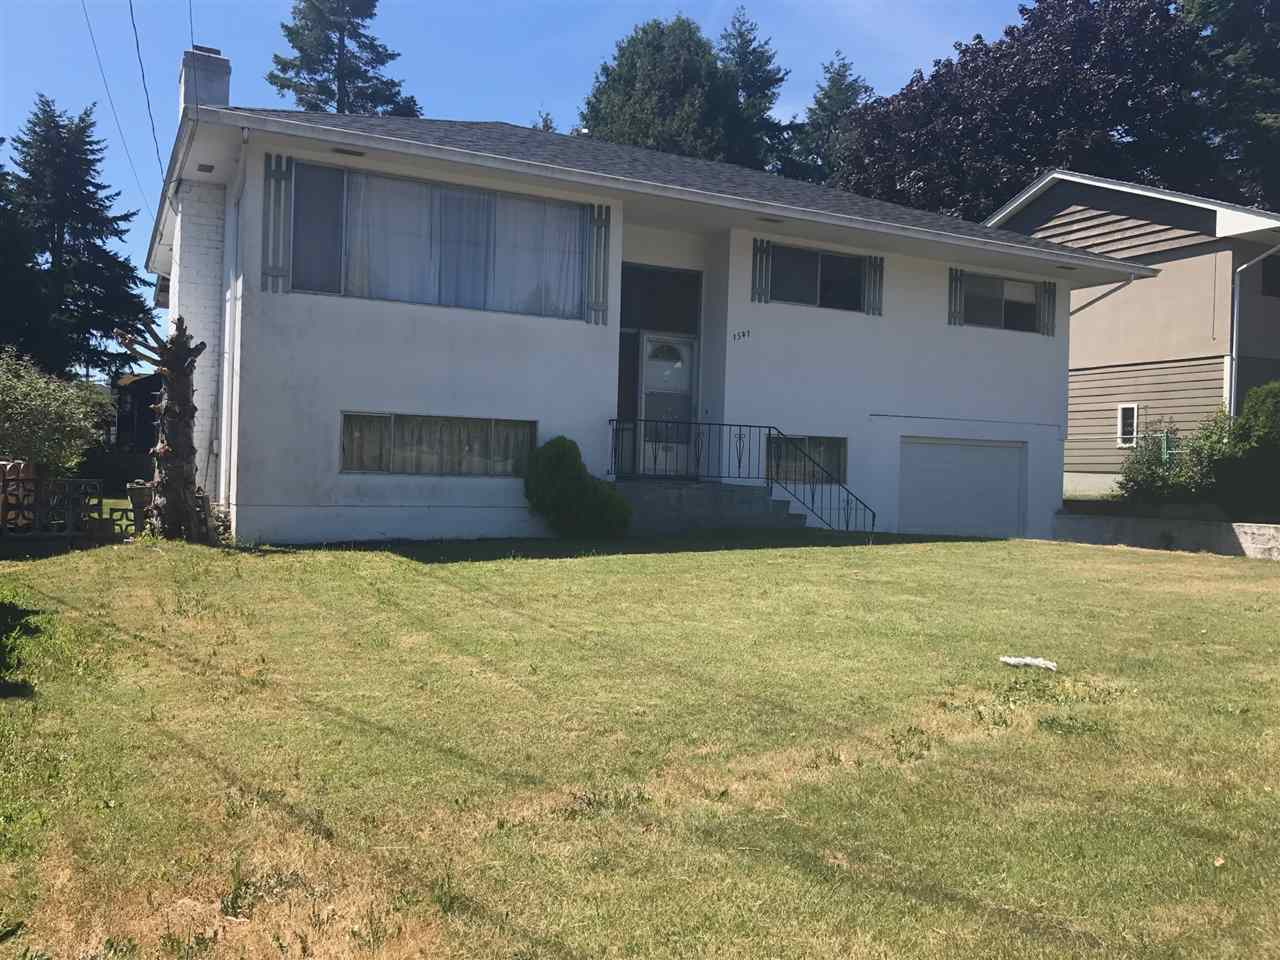 Detached at 1541 CHESTNUT STREET, South Surrey White Rock, British Columbia. Image 1